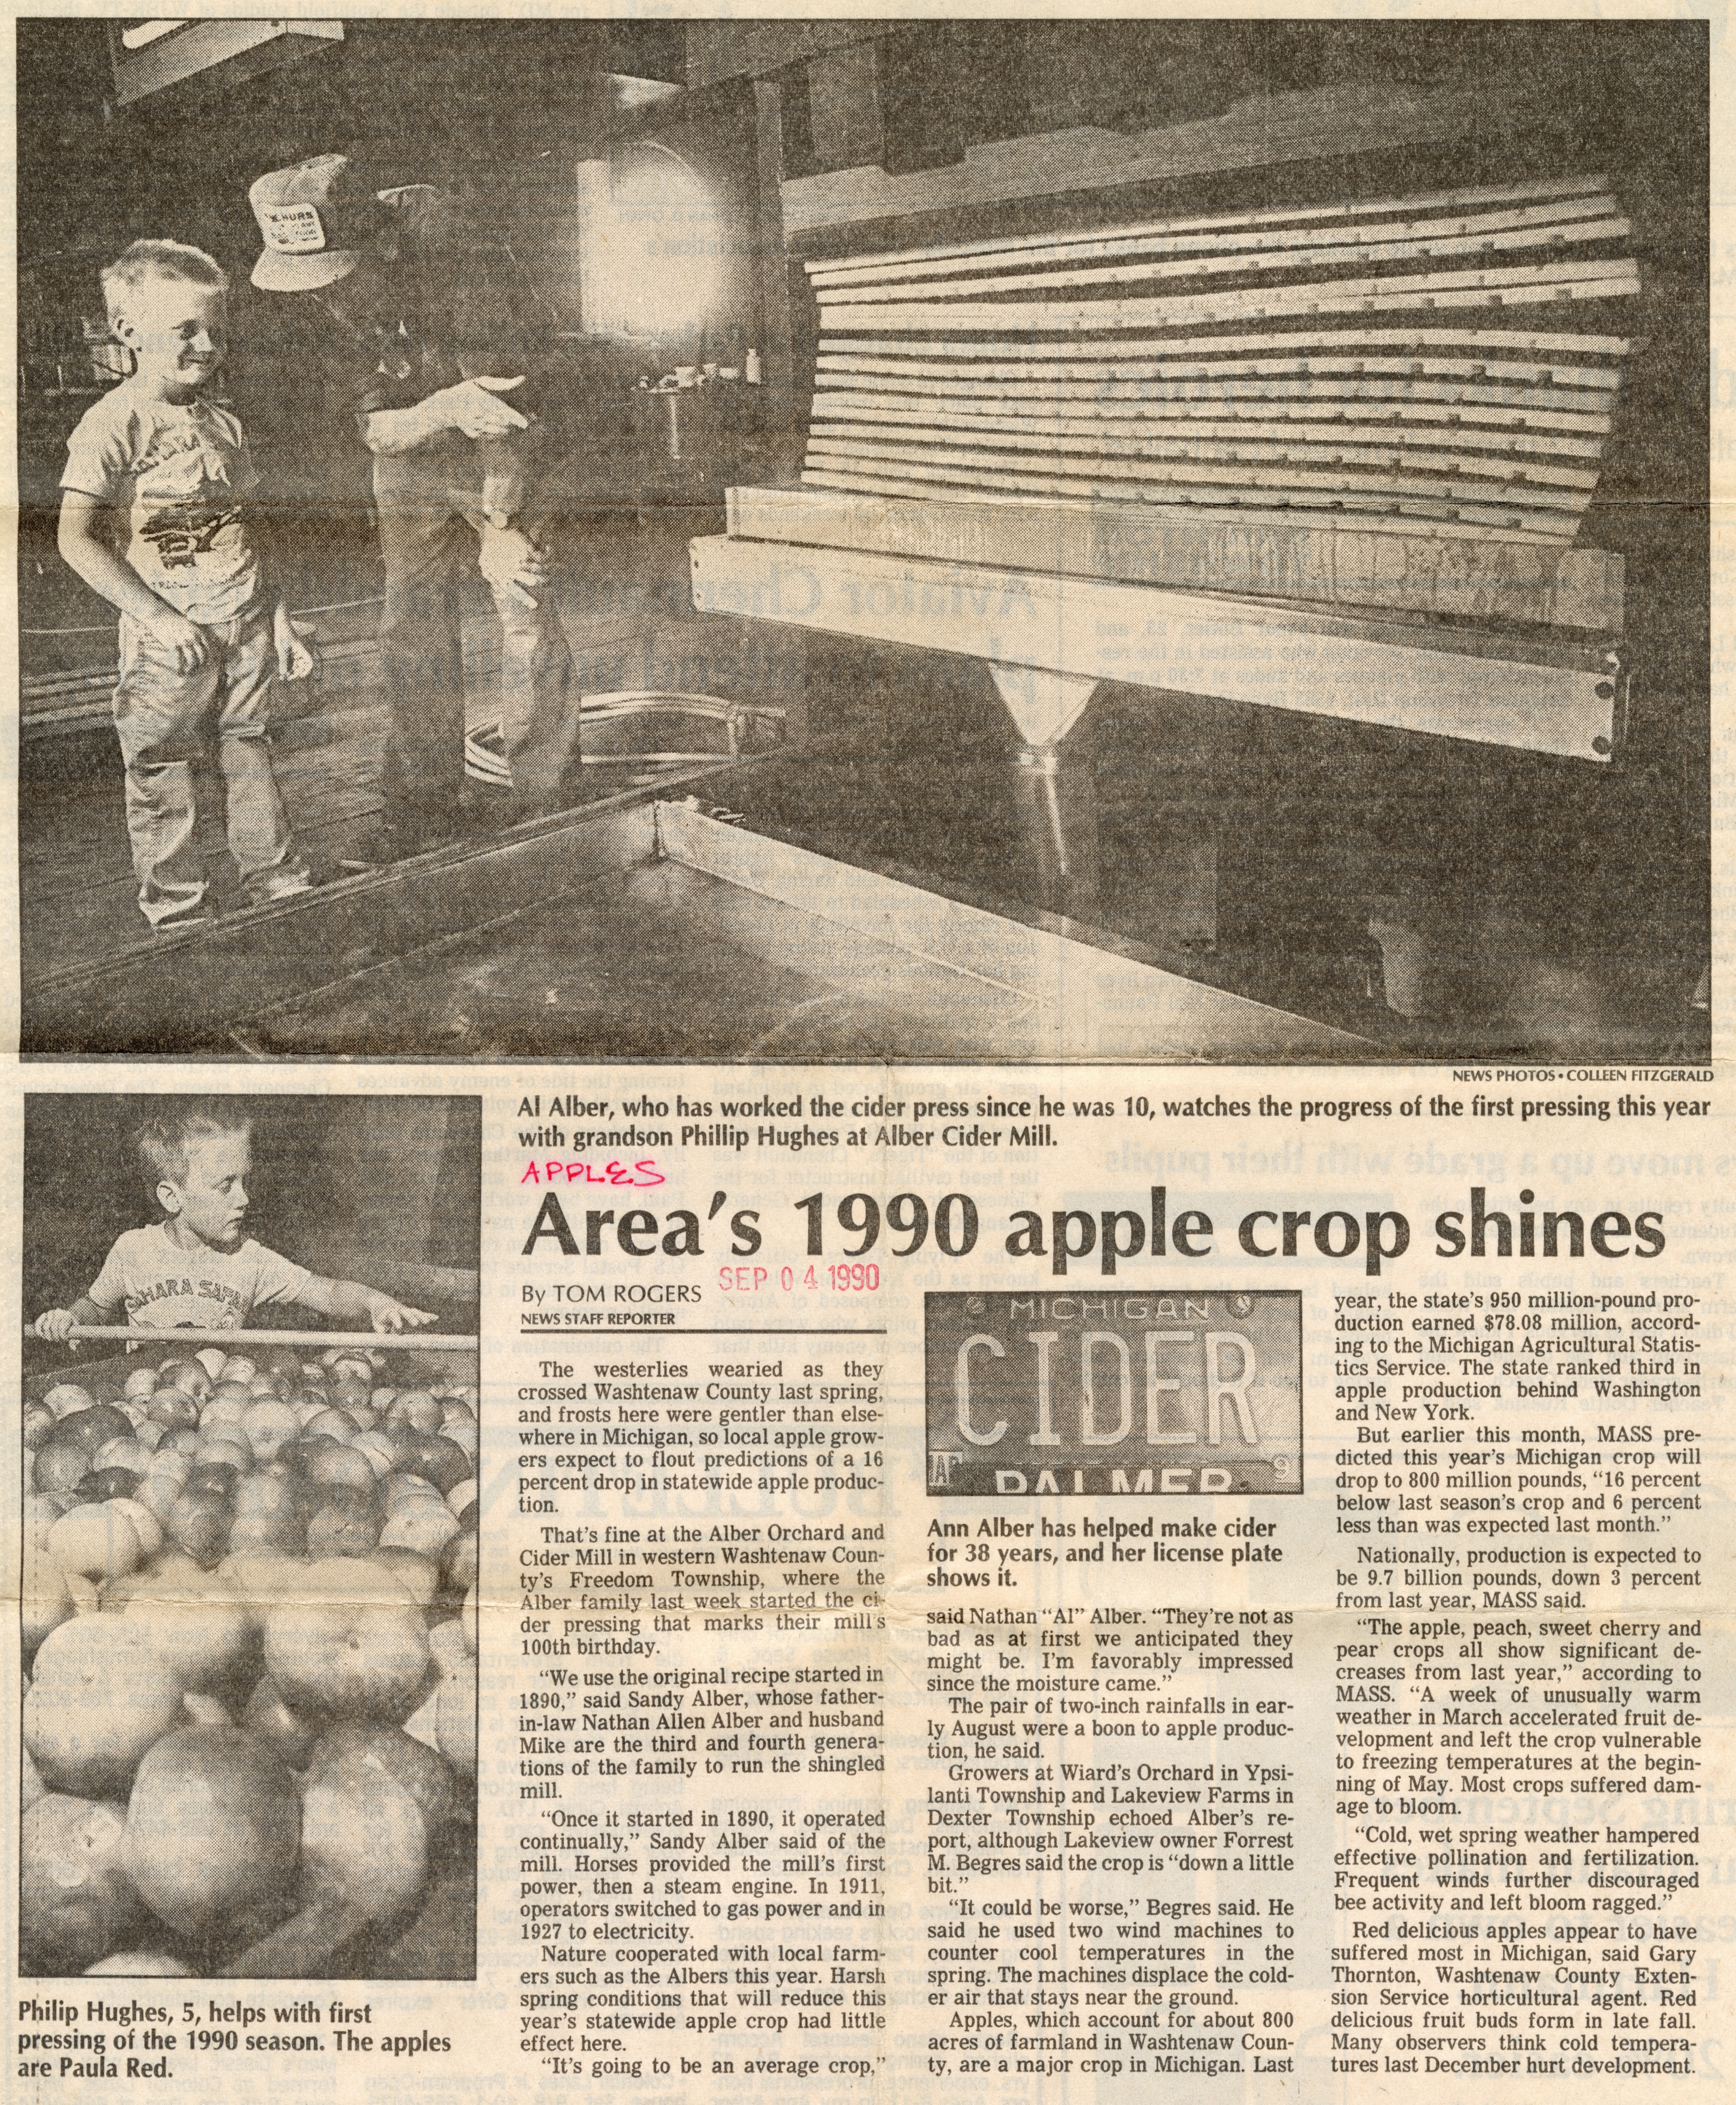 Area's 1990 Apple Crop Shines image